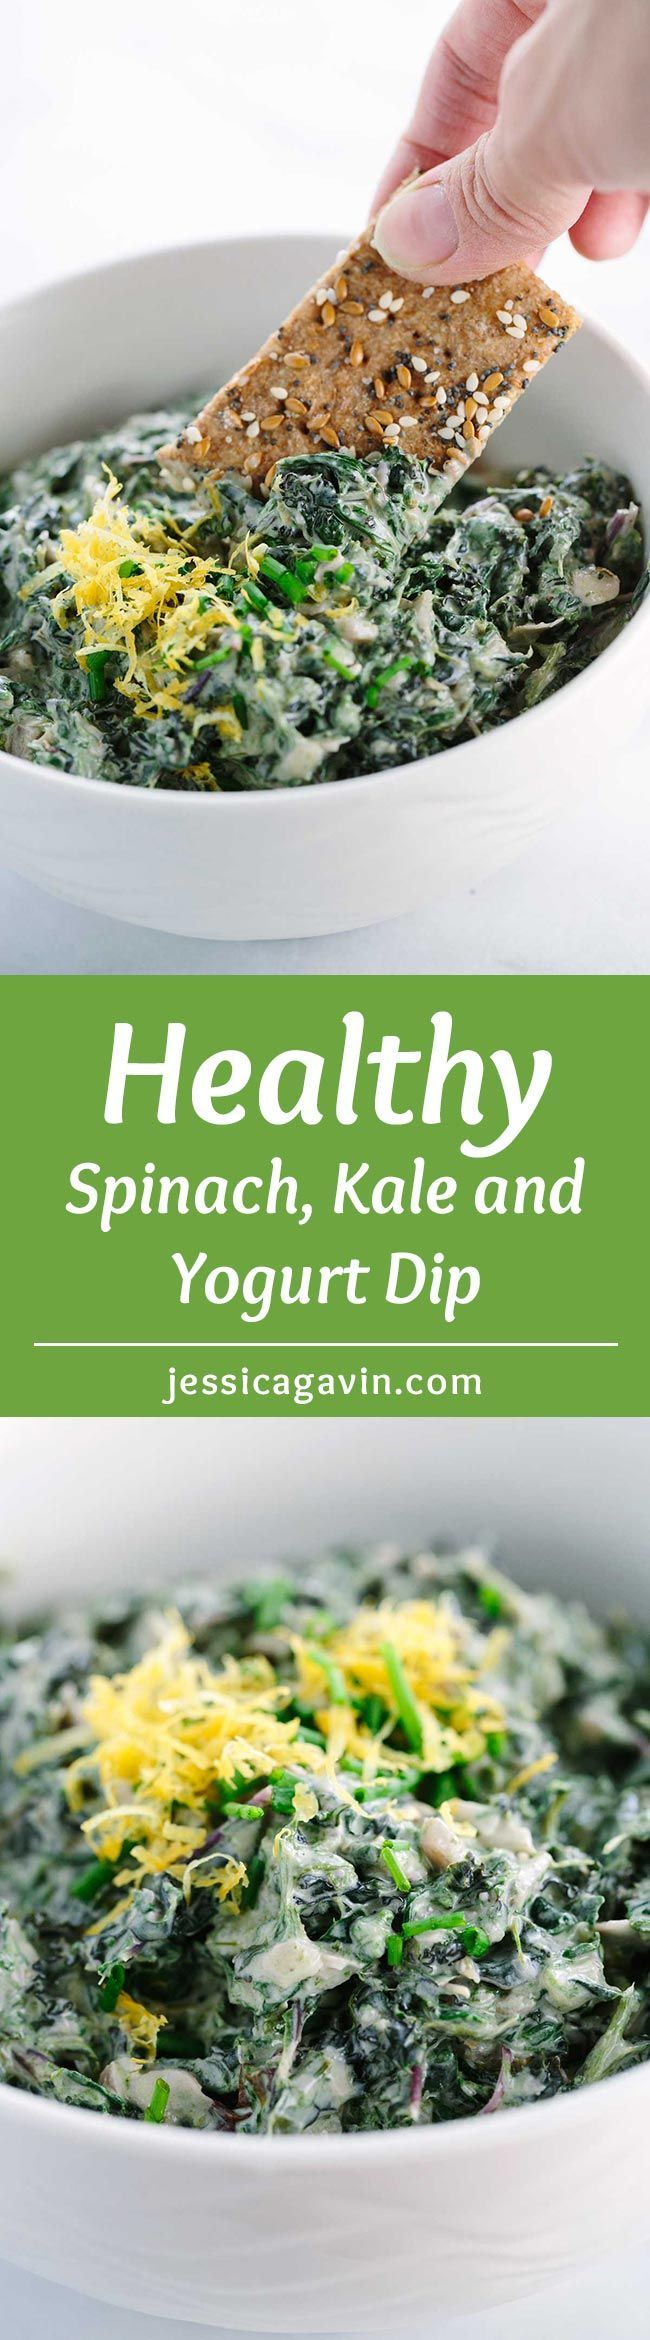 Spinach Kale Yogurt Dip - a healthy snack recipe for any occasion. Homemade whole grain crackers make a perfect crunchy pairing for this warm vegetable dip! | jessicagavin.com